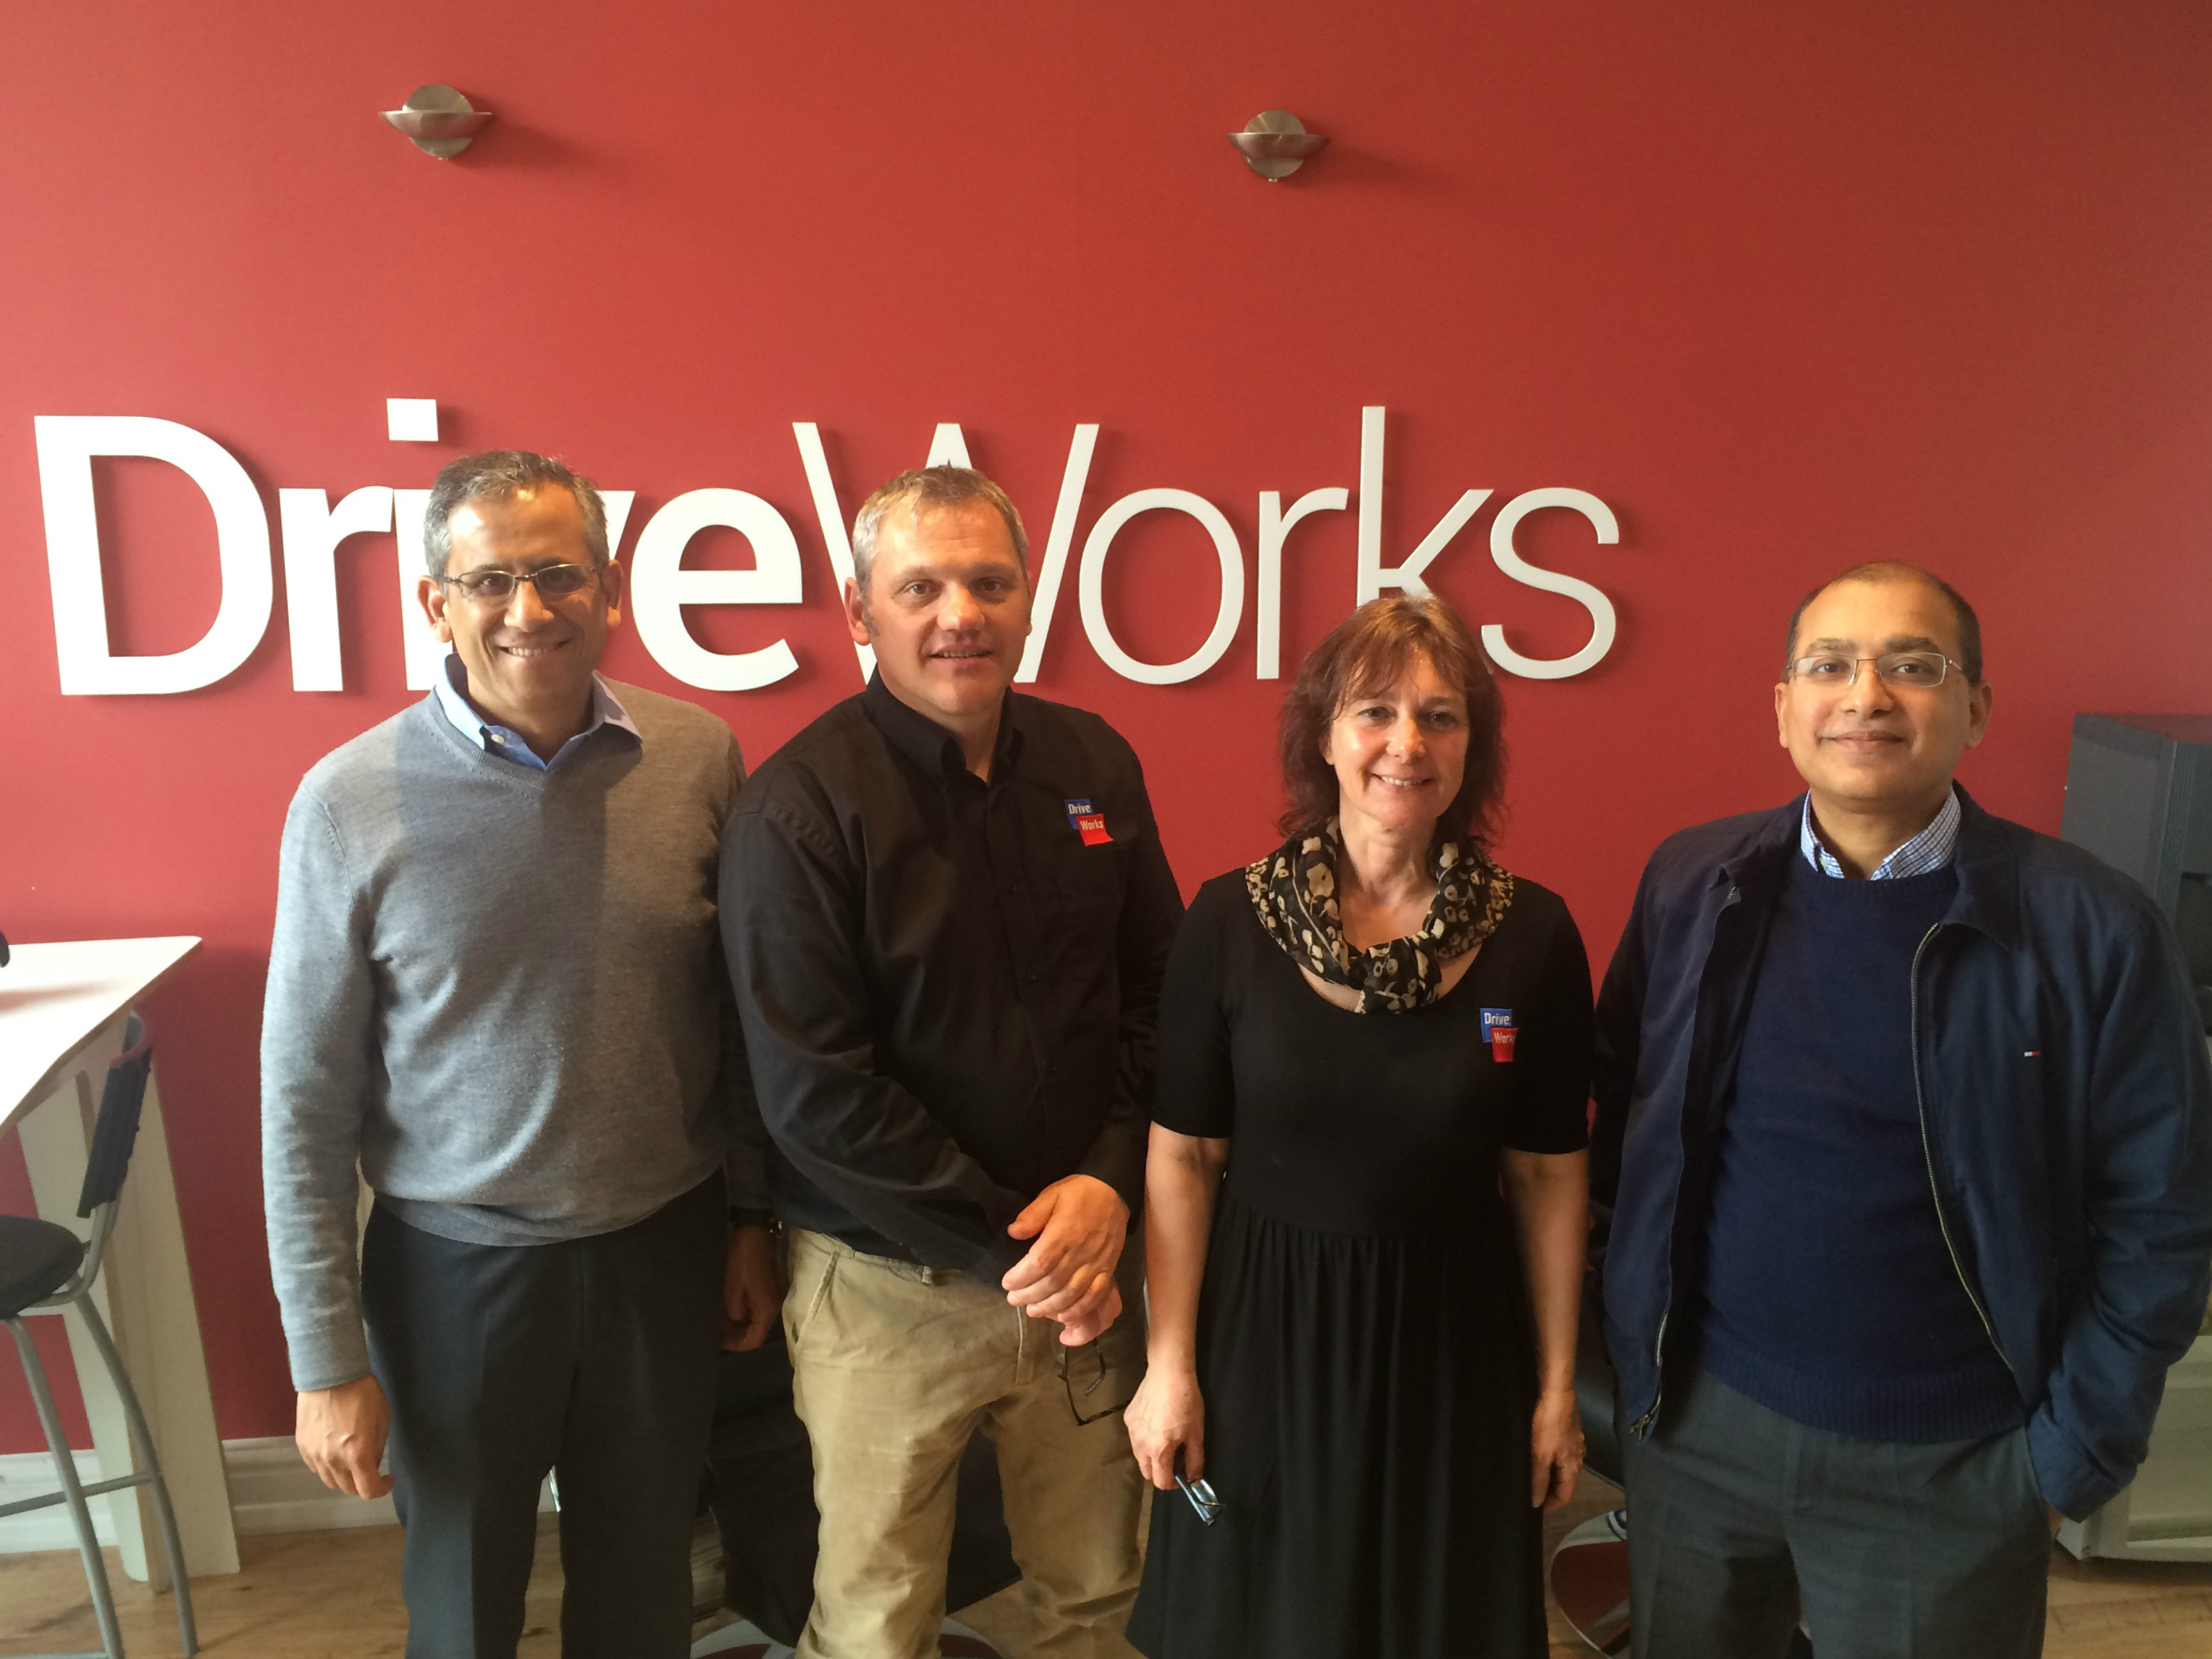 Suchit & Kishore from SOLIDWORKS with Glen & Maria